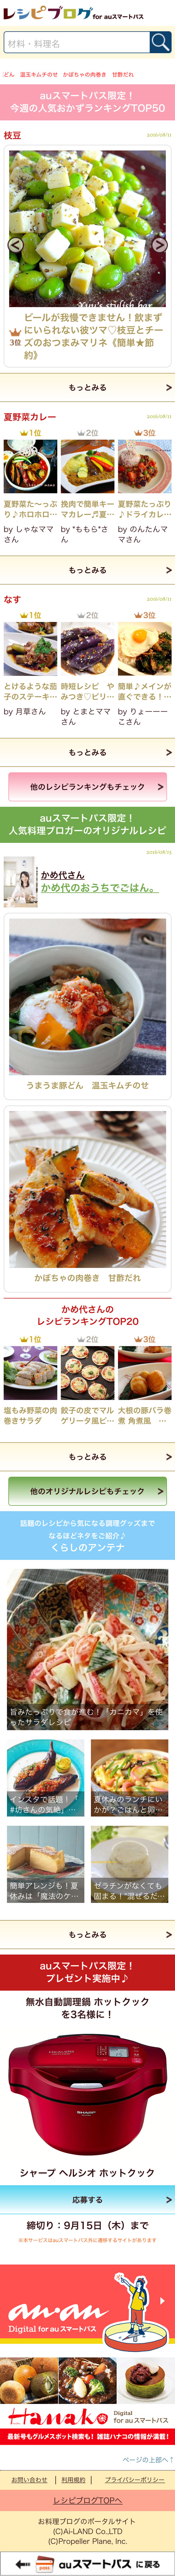 recipeblog_cap0816.jpg